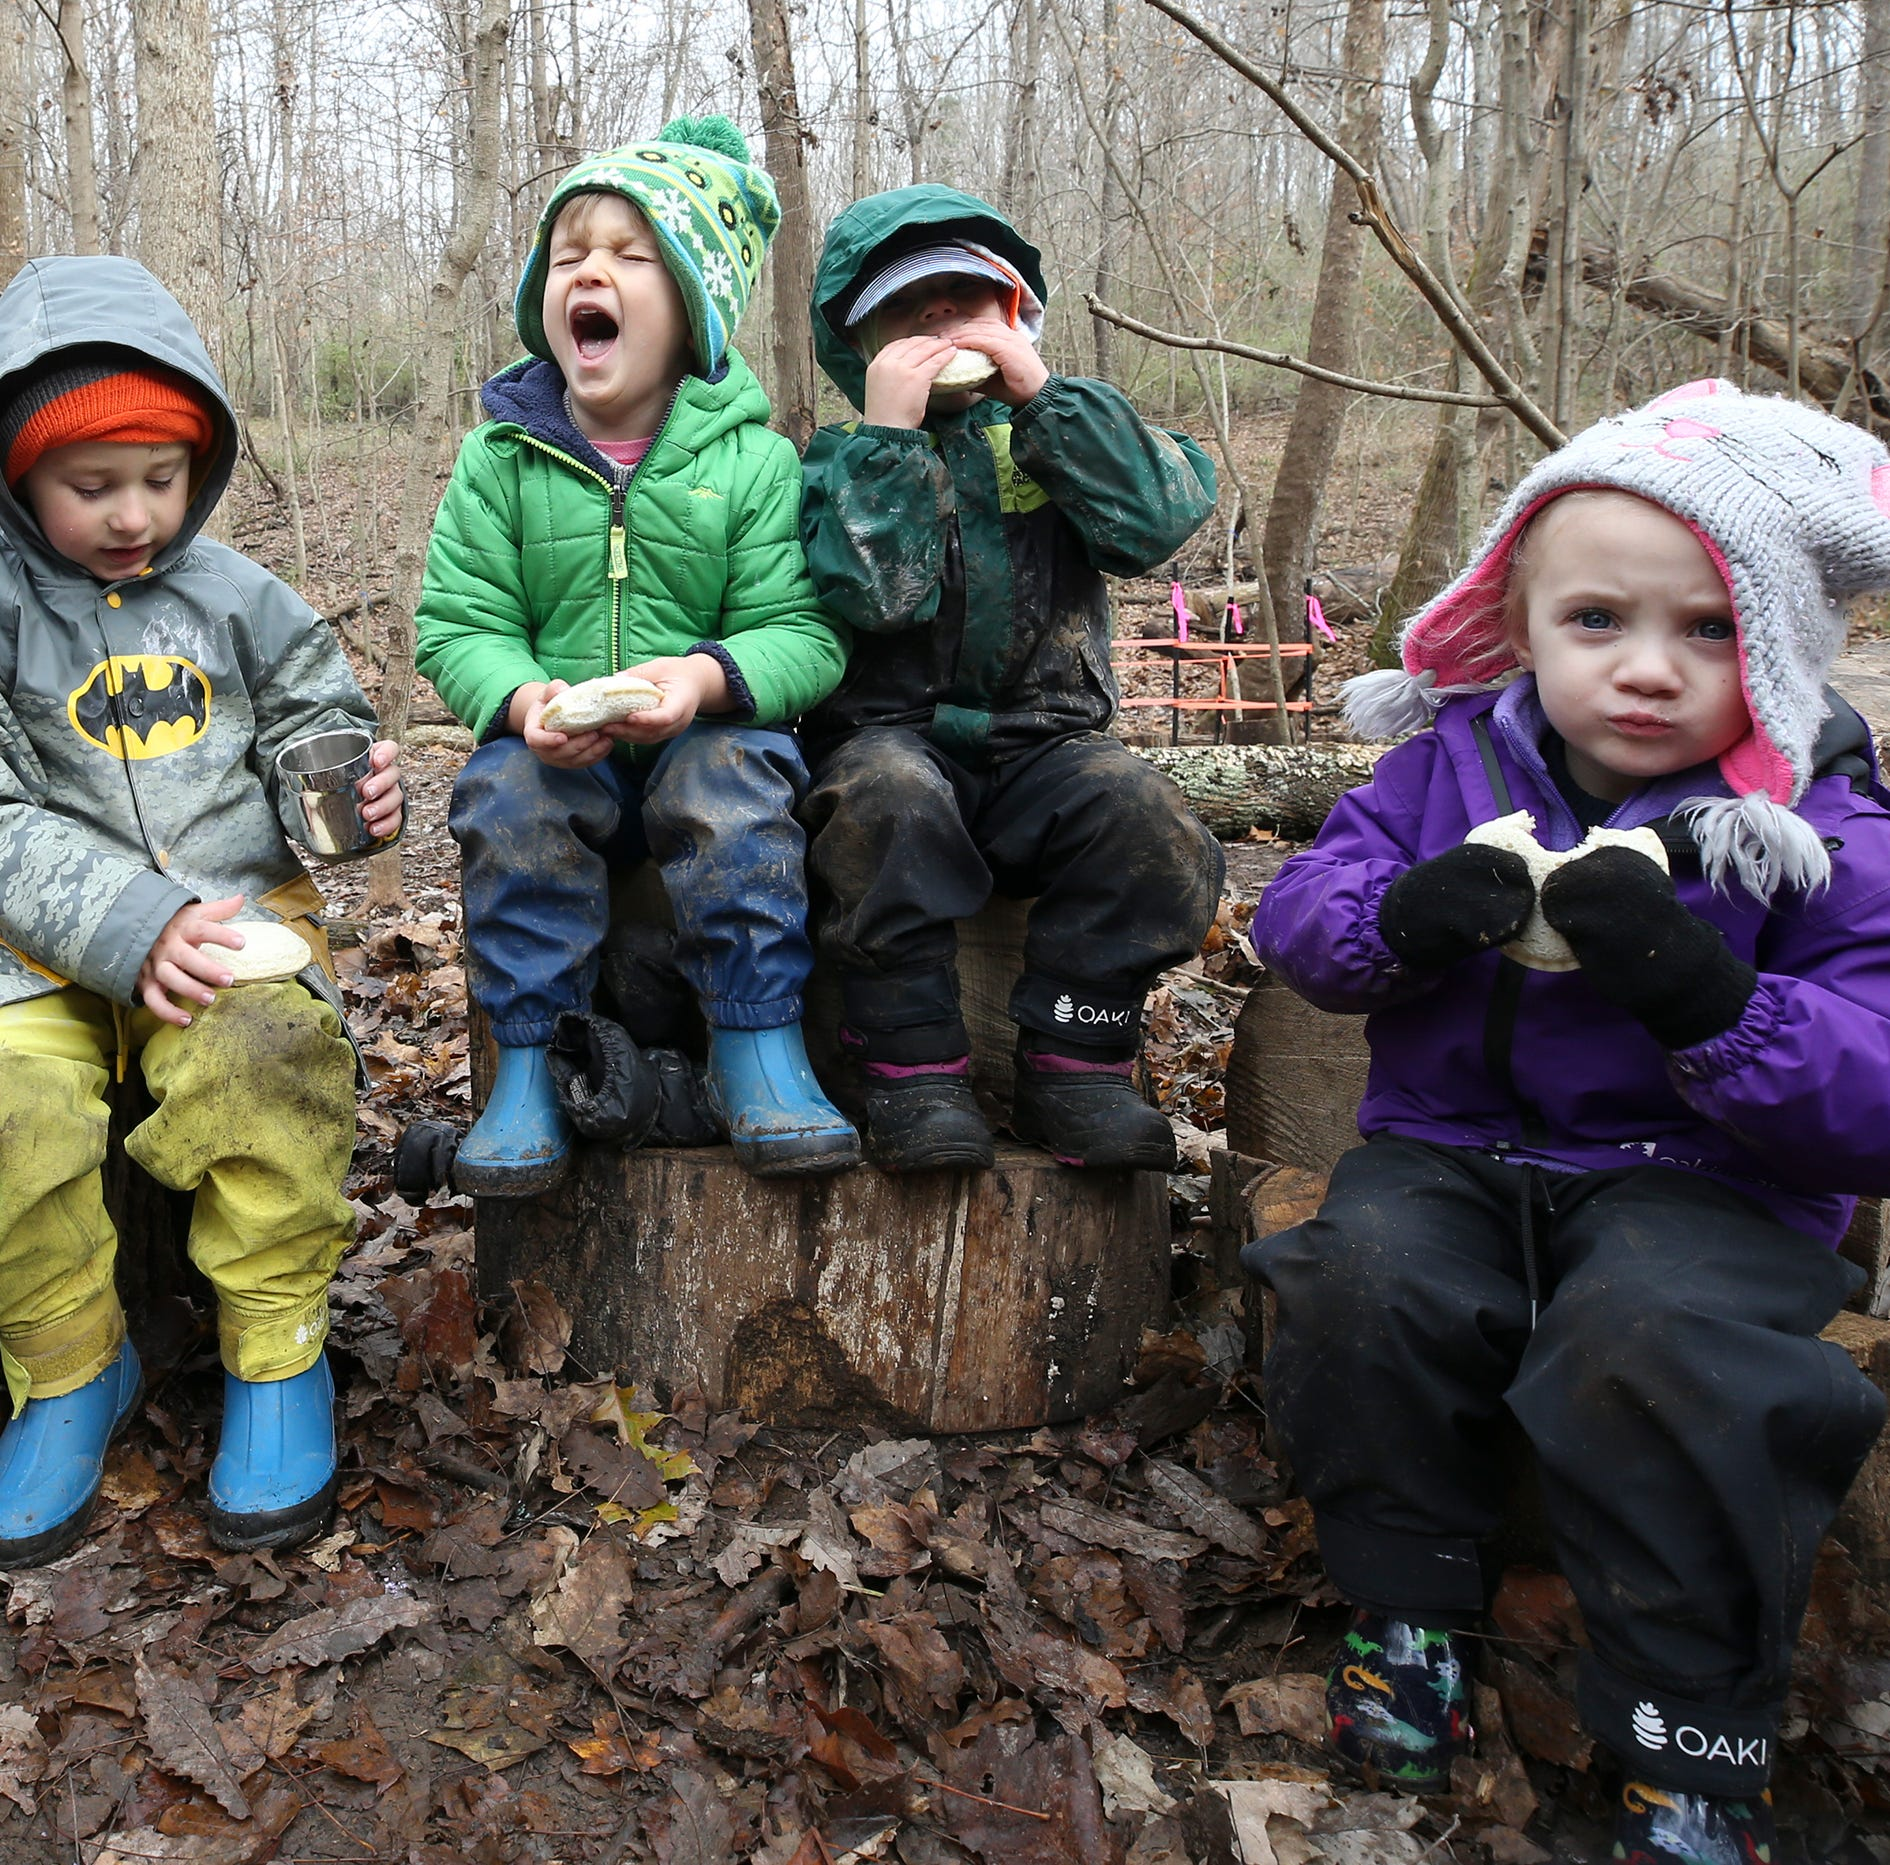 Thrive students Will Clark, Quinn Mahoney, Ferris Devlin, Palmer Harris and Julia Eskridge prepare for lunch in their outdoor classroom at Creasey Mahan Nature Preserve.